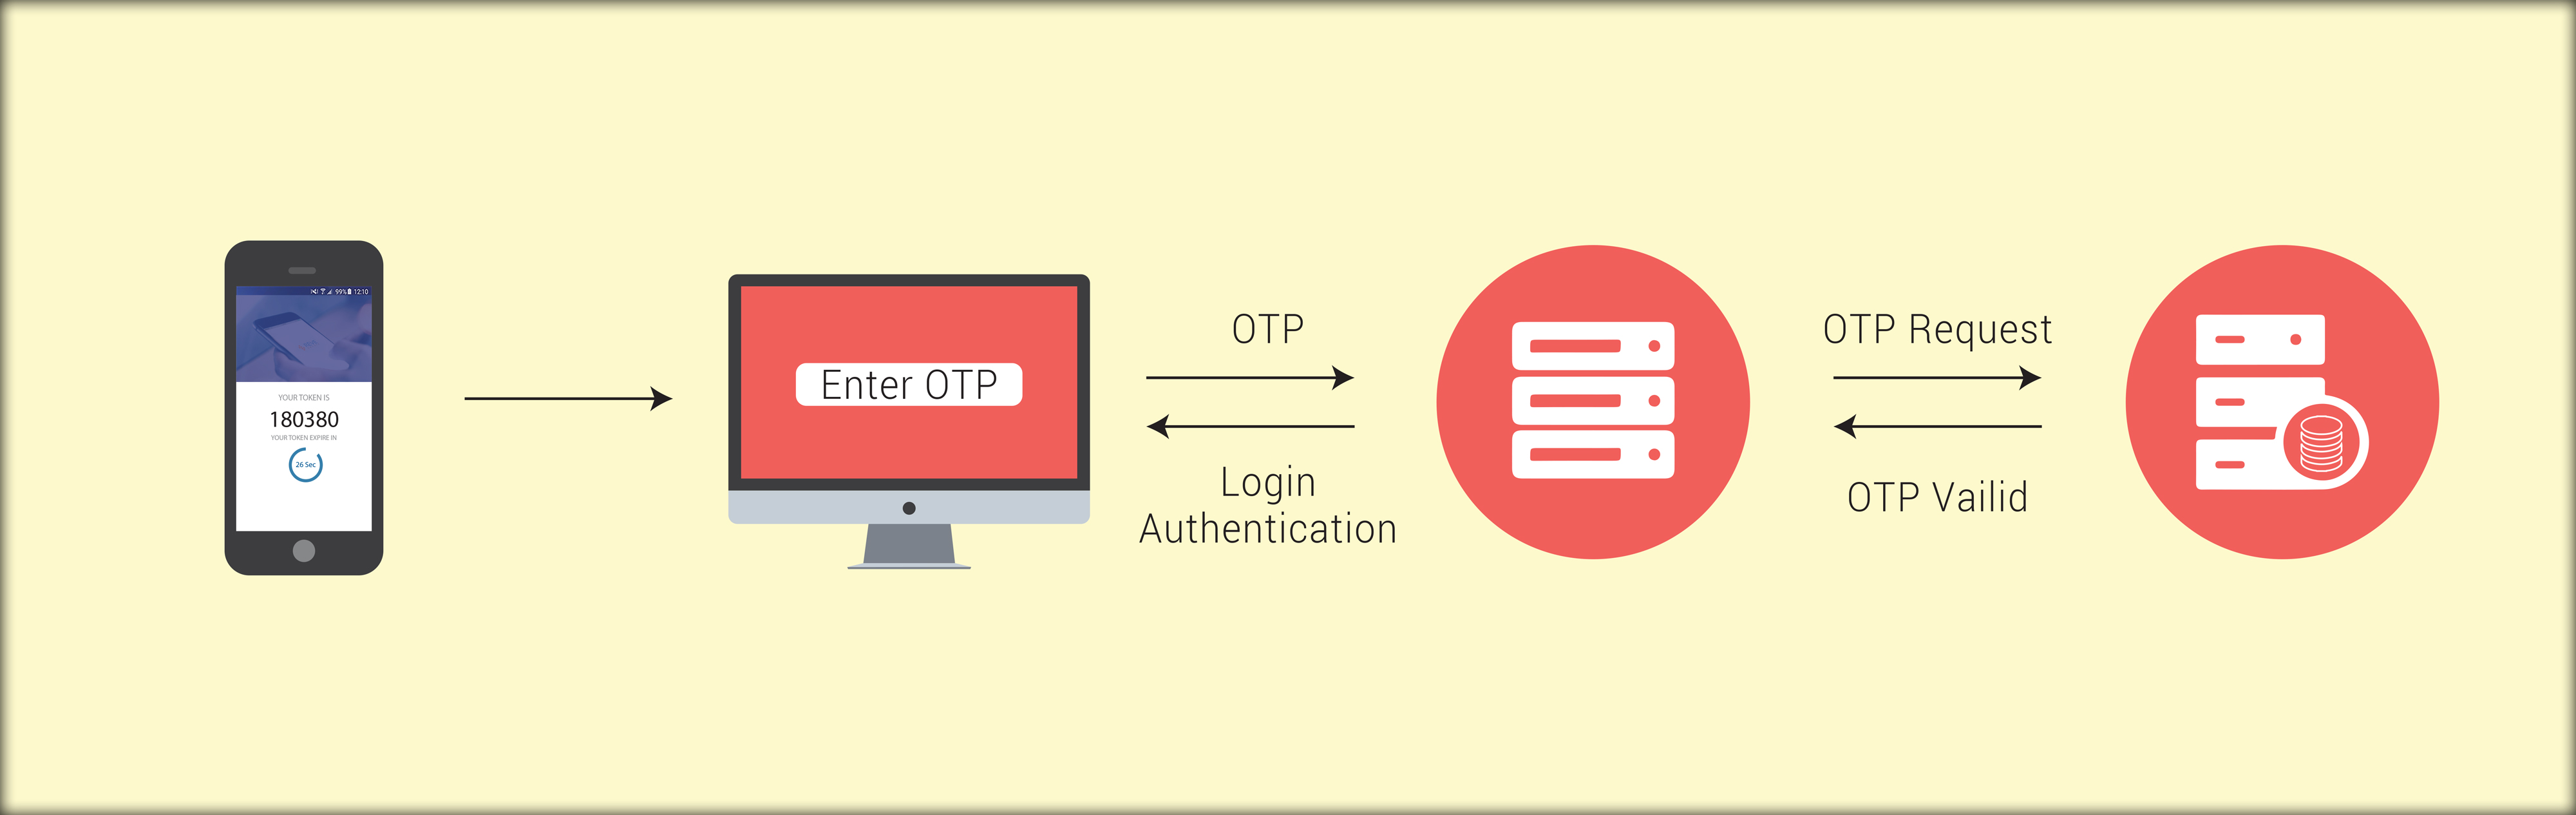 How Two Step Verification Secures the Online Accounts